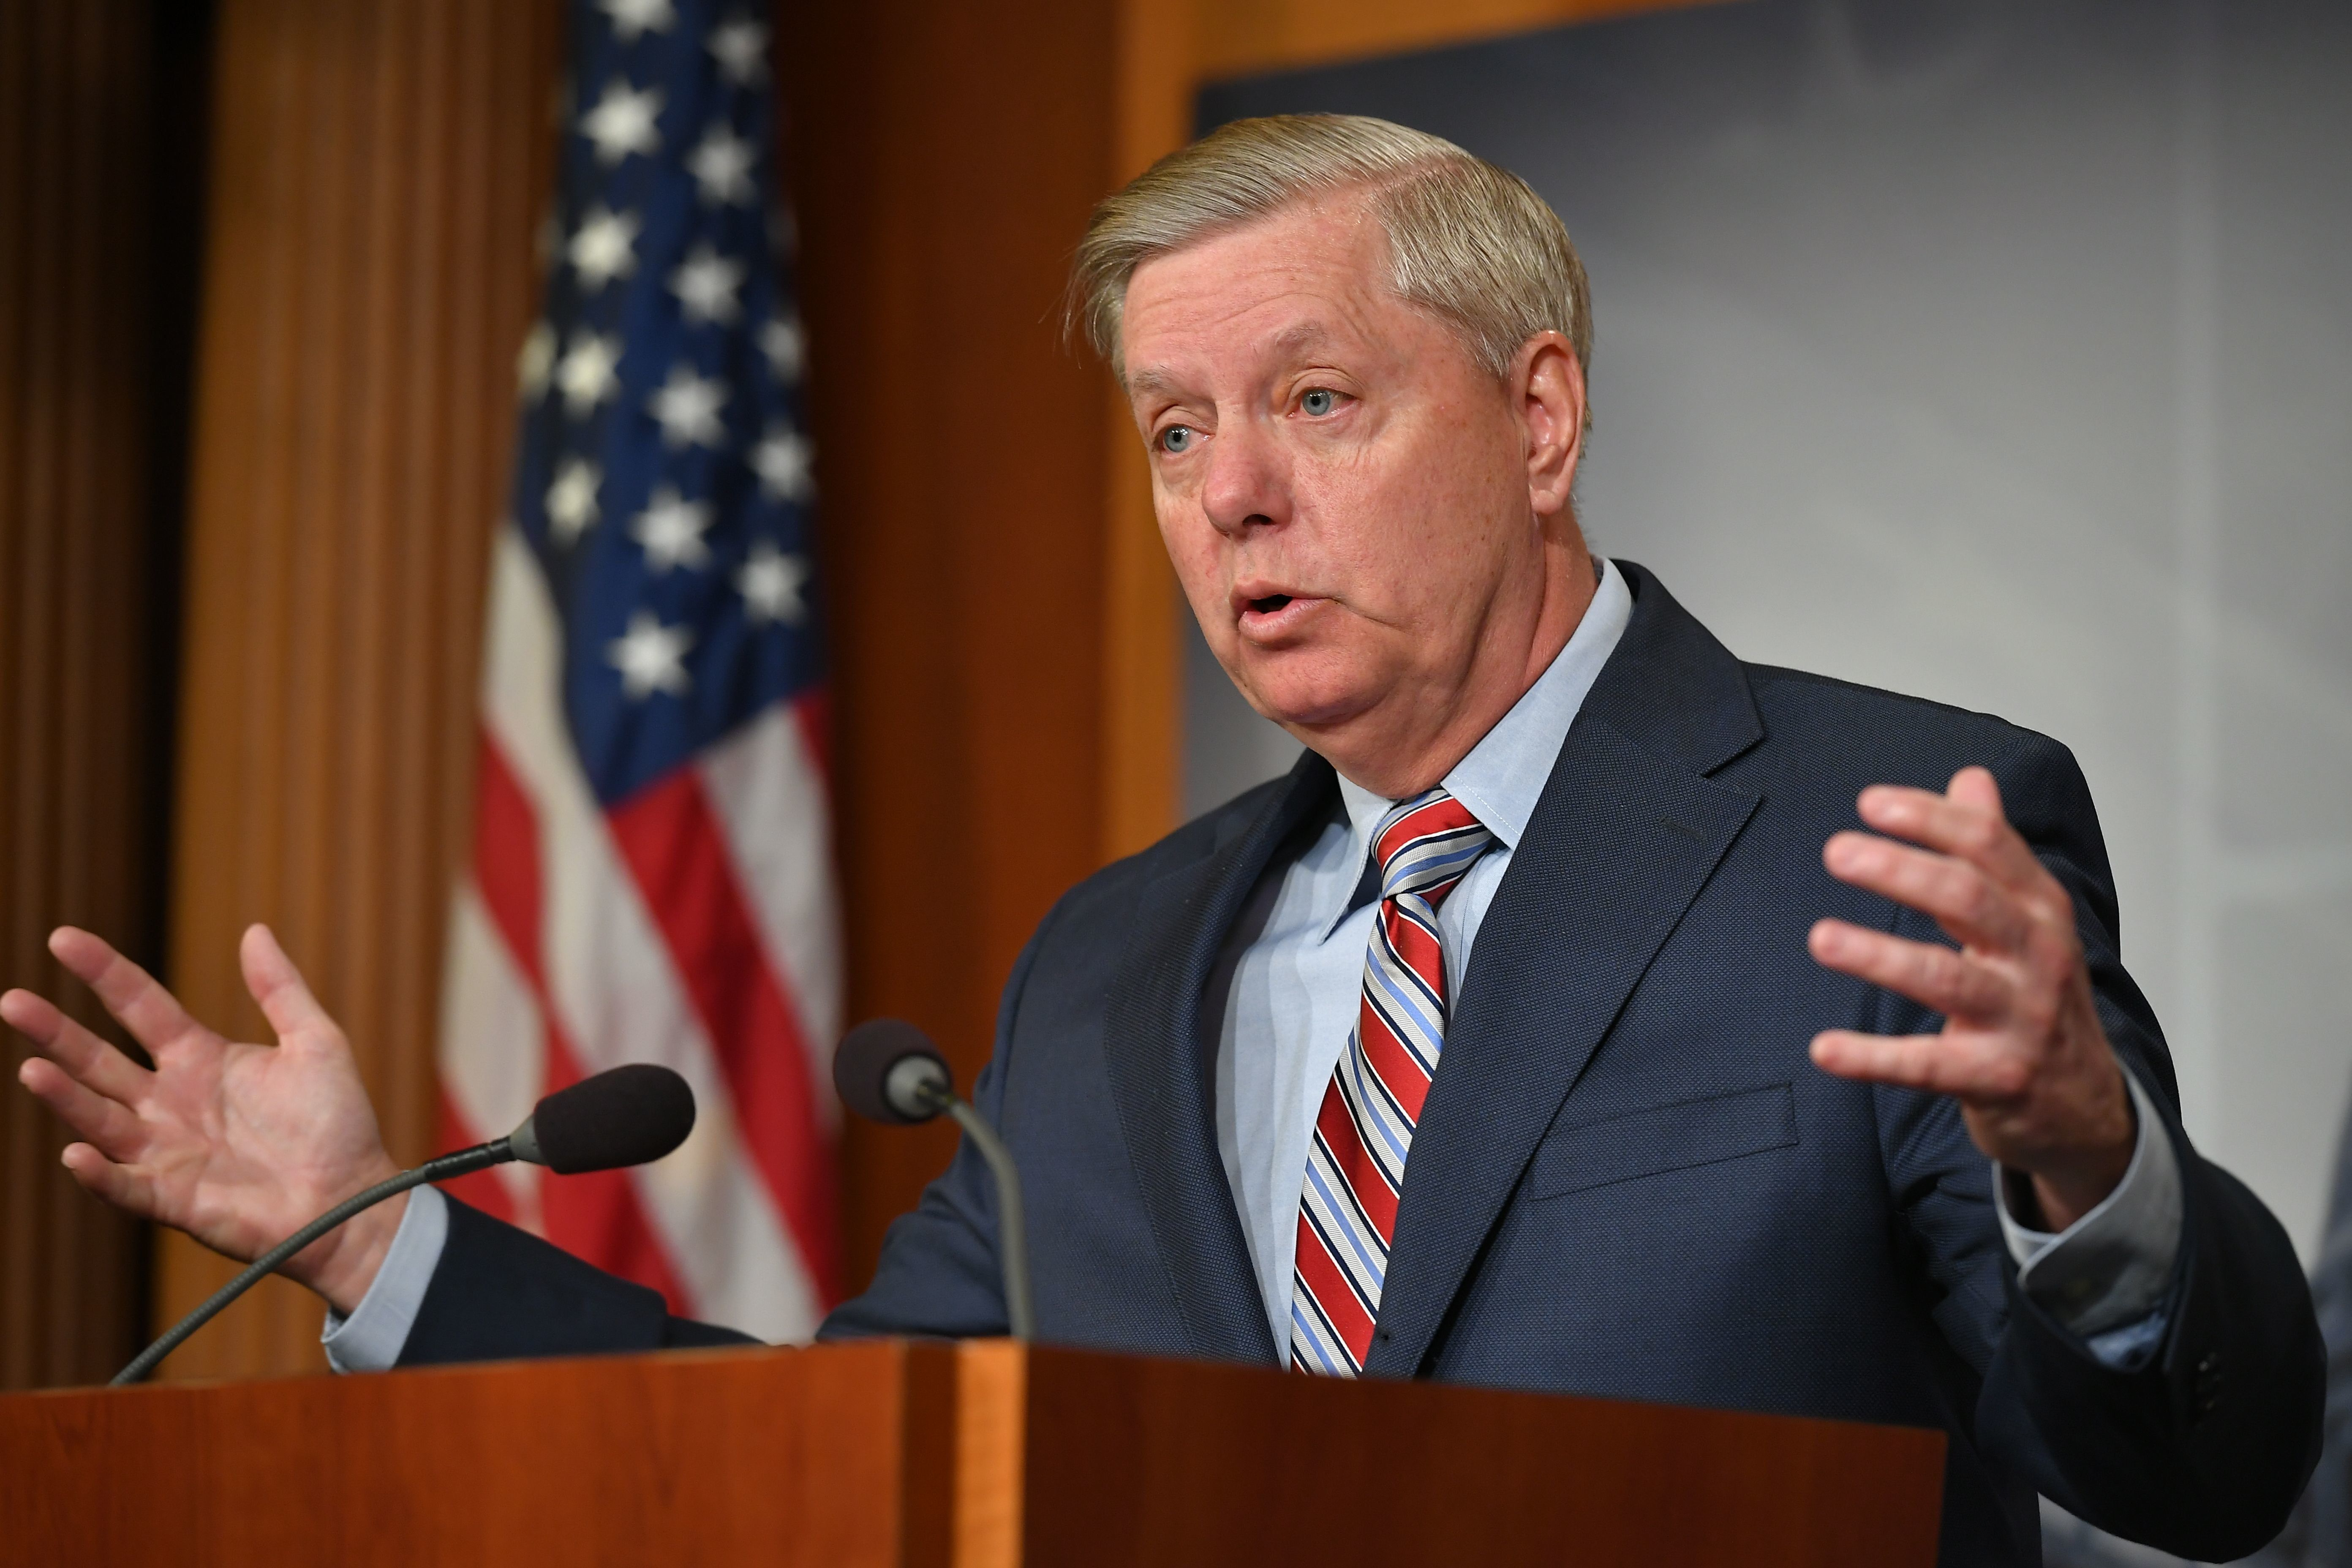 Senate Judiciary Committee Chairman Lindsey Graham, R-SC, speaks during a press conference on US Attorney General William Barr's summary of the Mueller report at the US Capitol in Washington, DC on March 25, 2019. (Photo by Mandel NGAN / AFP)        (Photo credit should read MANDEL NGAN/AFP/Getty Images)